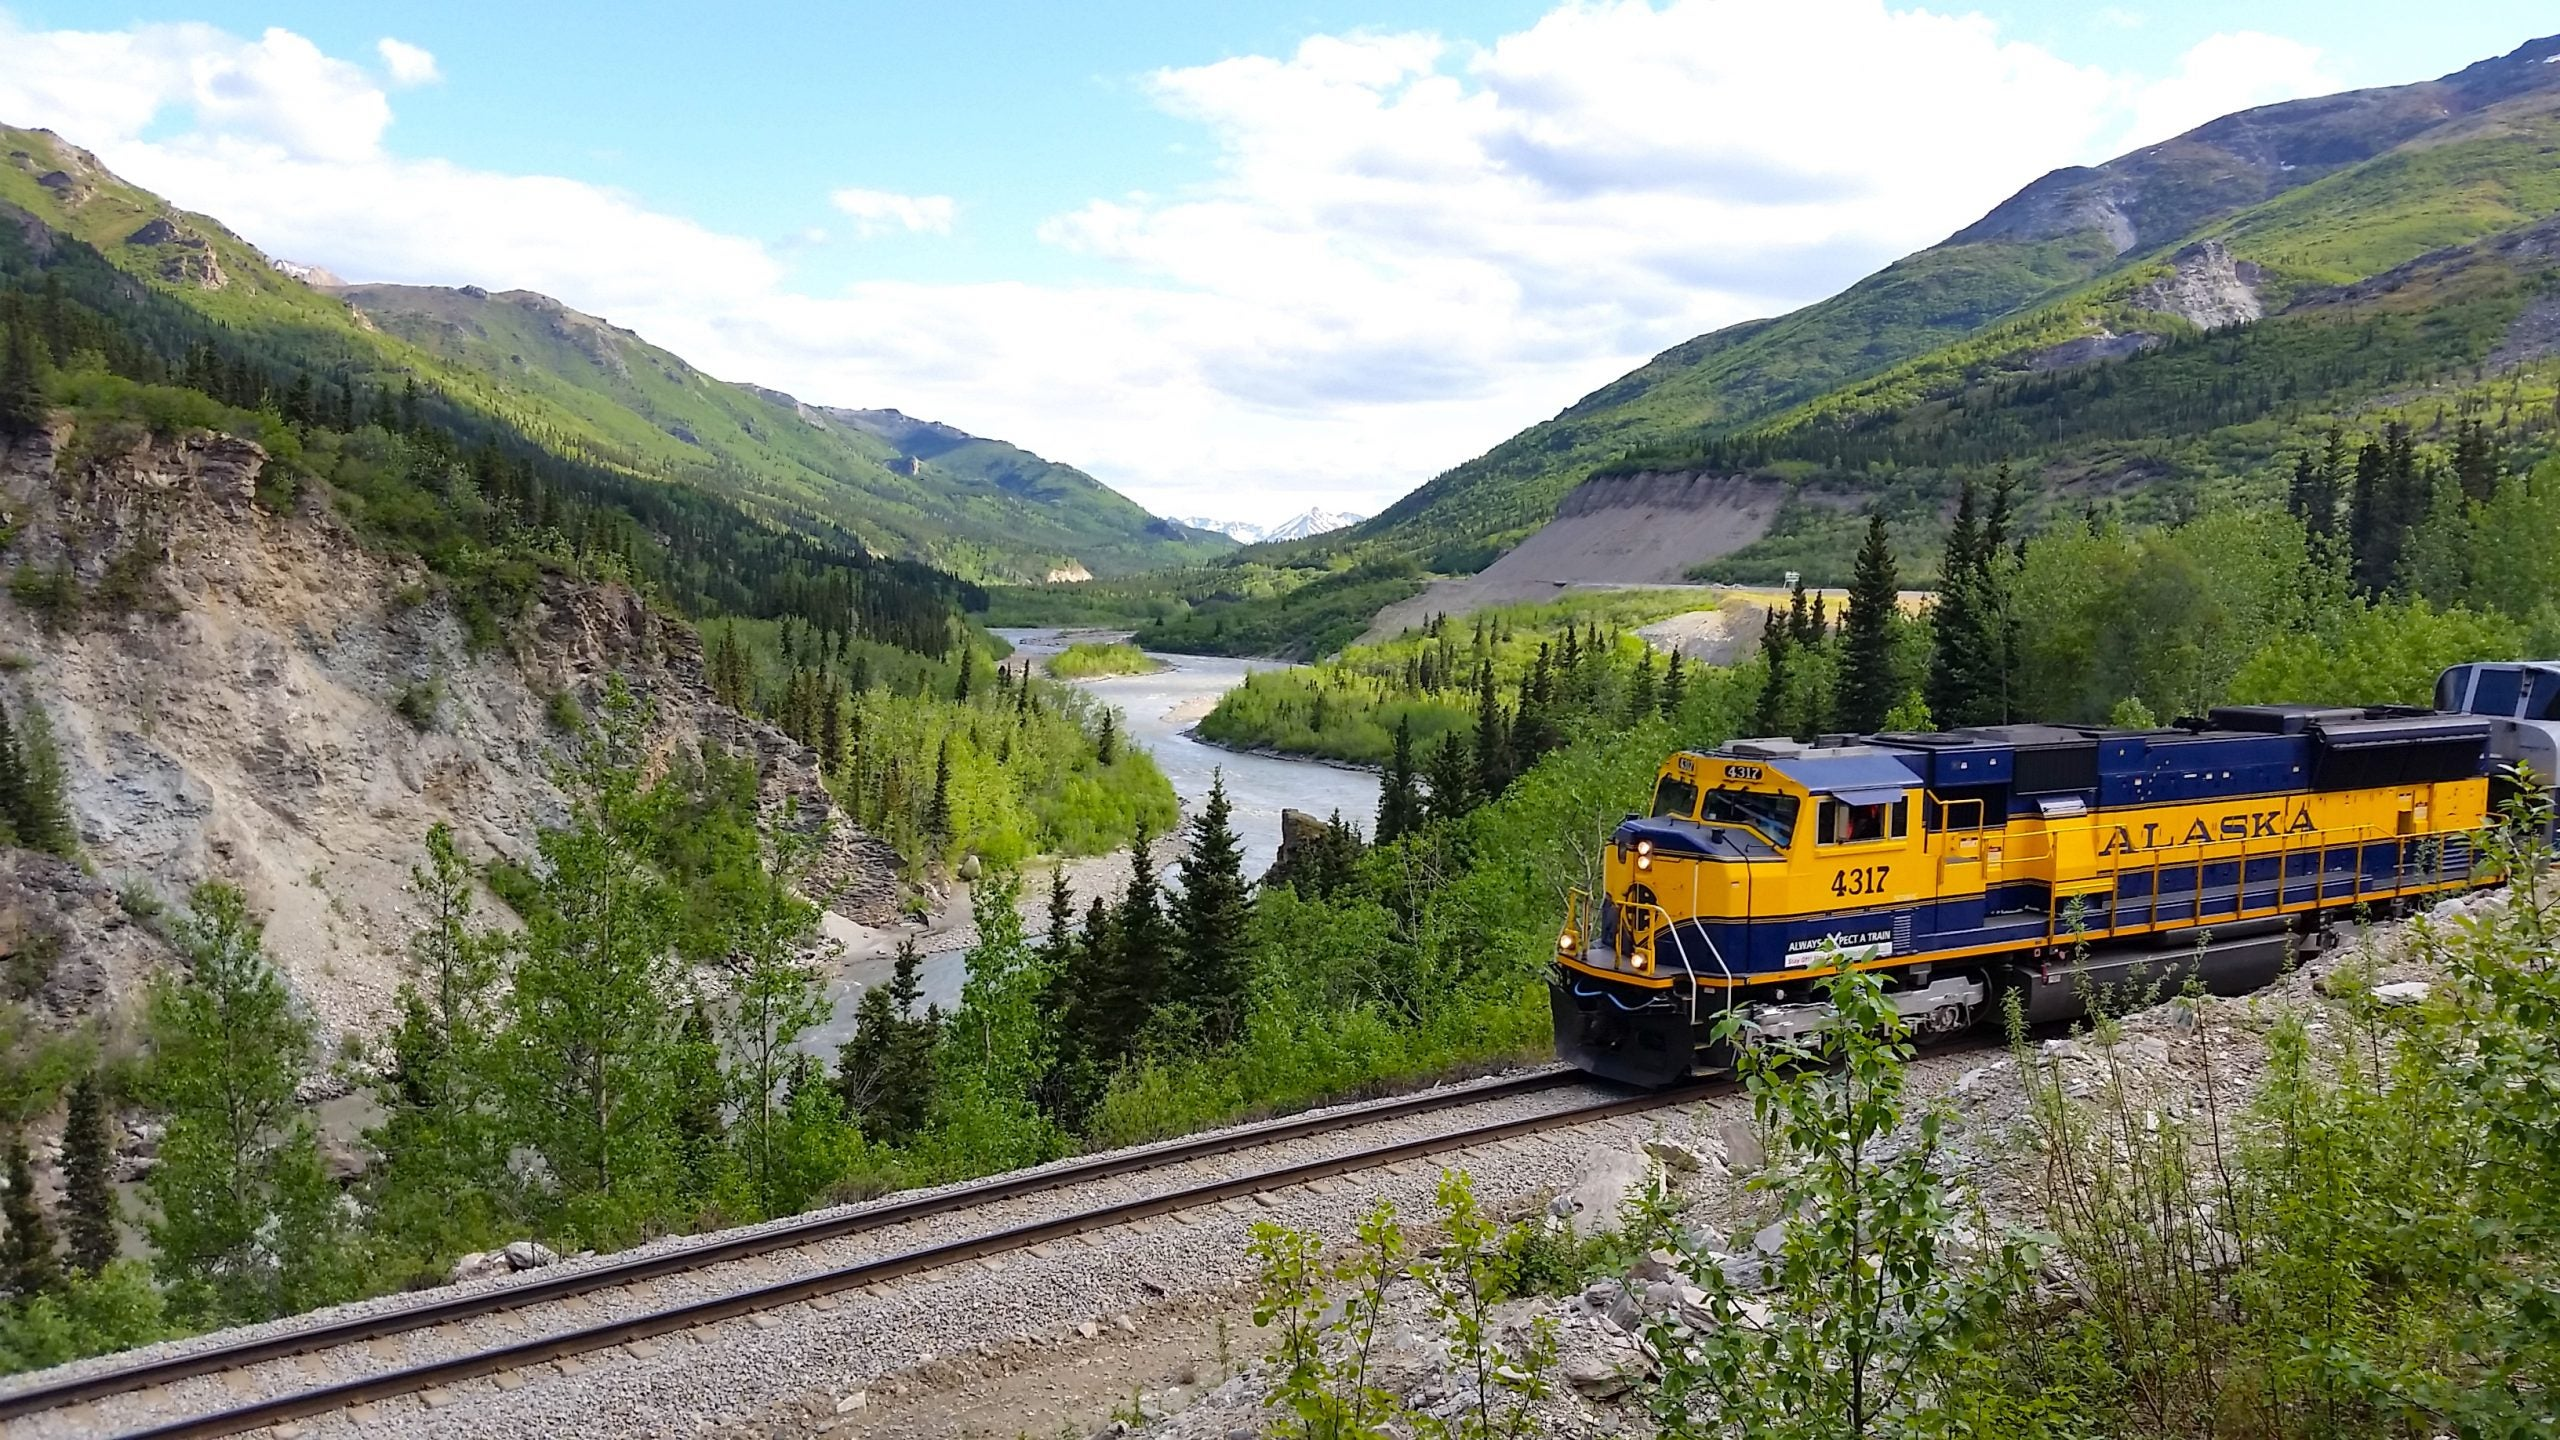 6 epic train trips to take this summer - The Points Guy